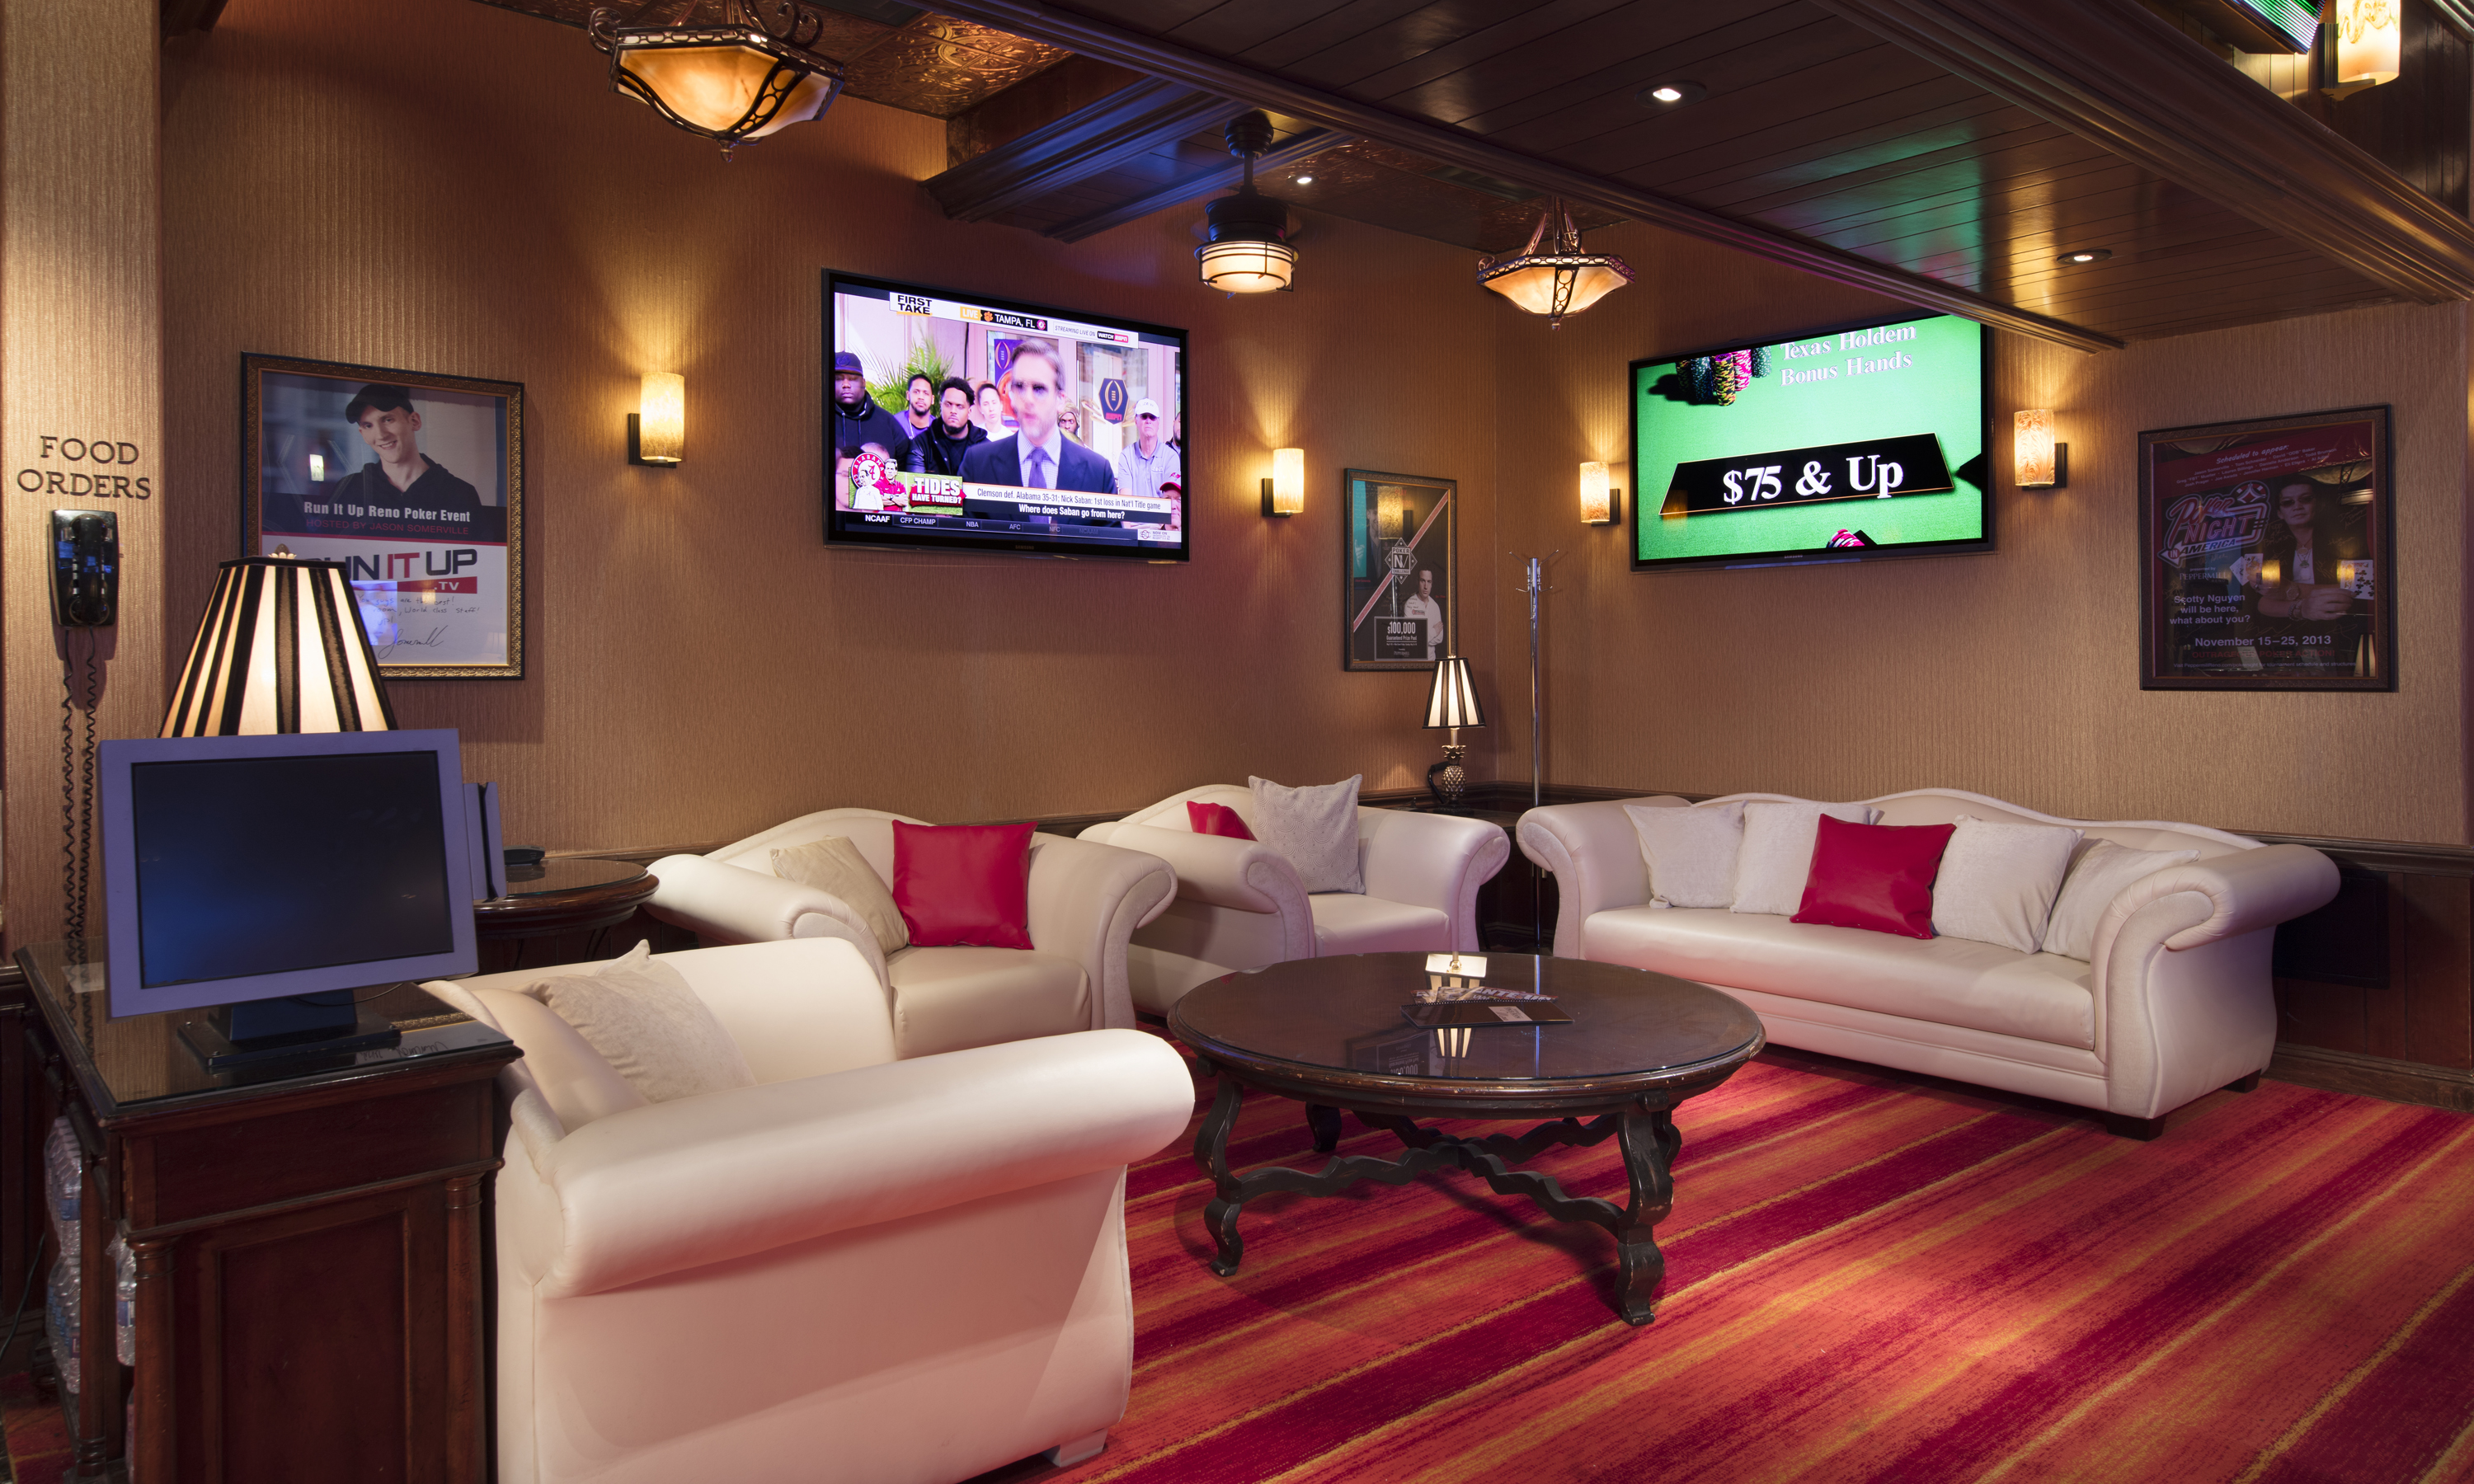 Downtown reno poker rooms for sale